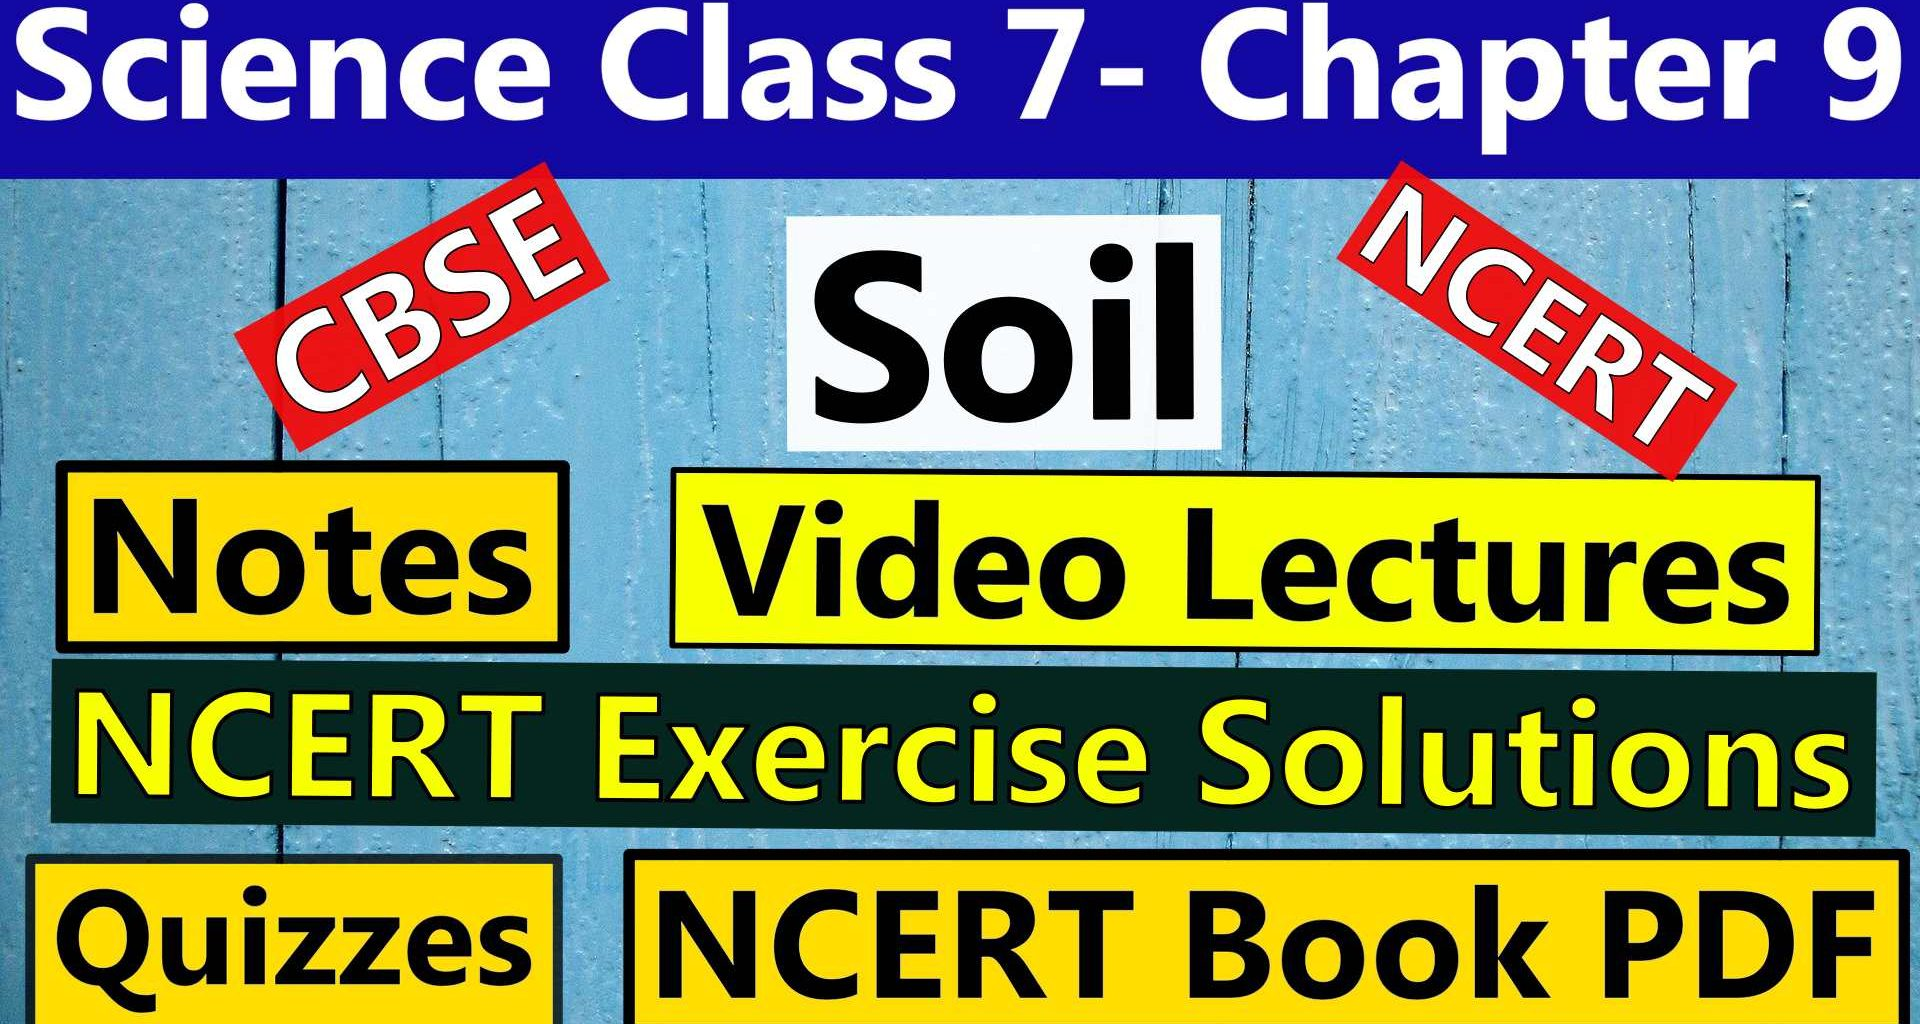 CBSE Science Class 7 - Chapter 9 - Soil - Notes, Video Lecture, NCERT Exercise Solution, Quizzes, NCERT Book Chapter 9 PDF Download, or view